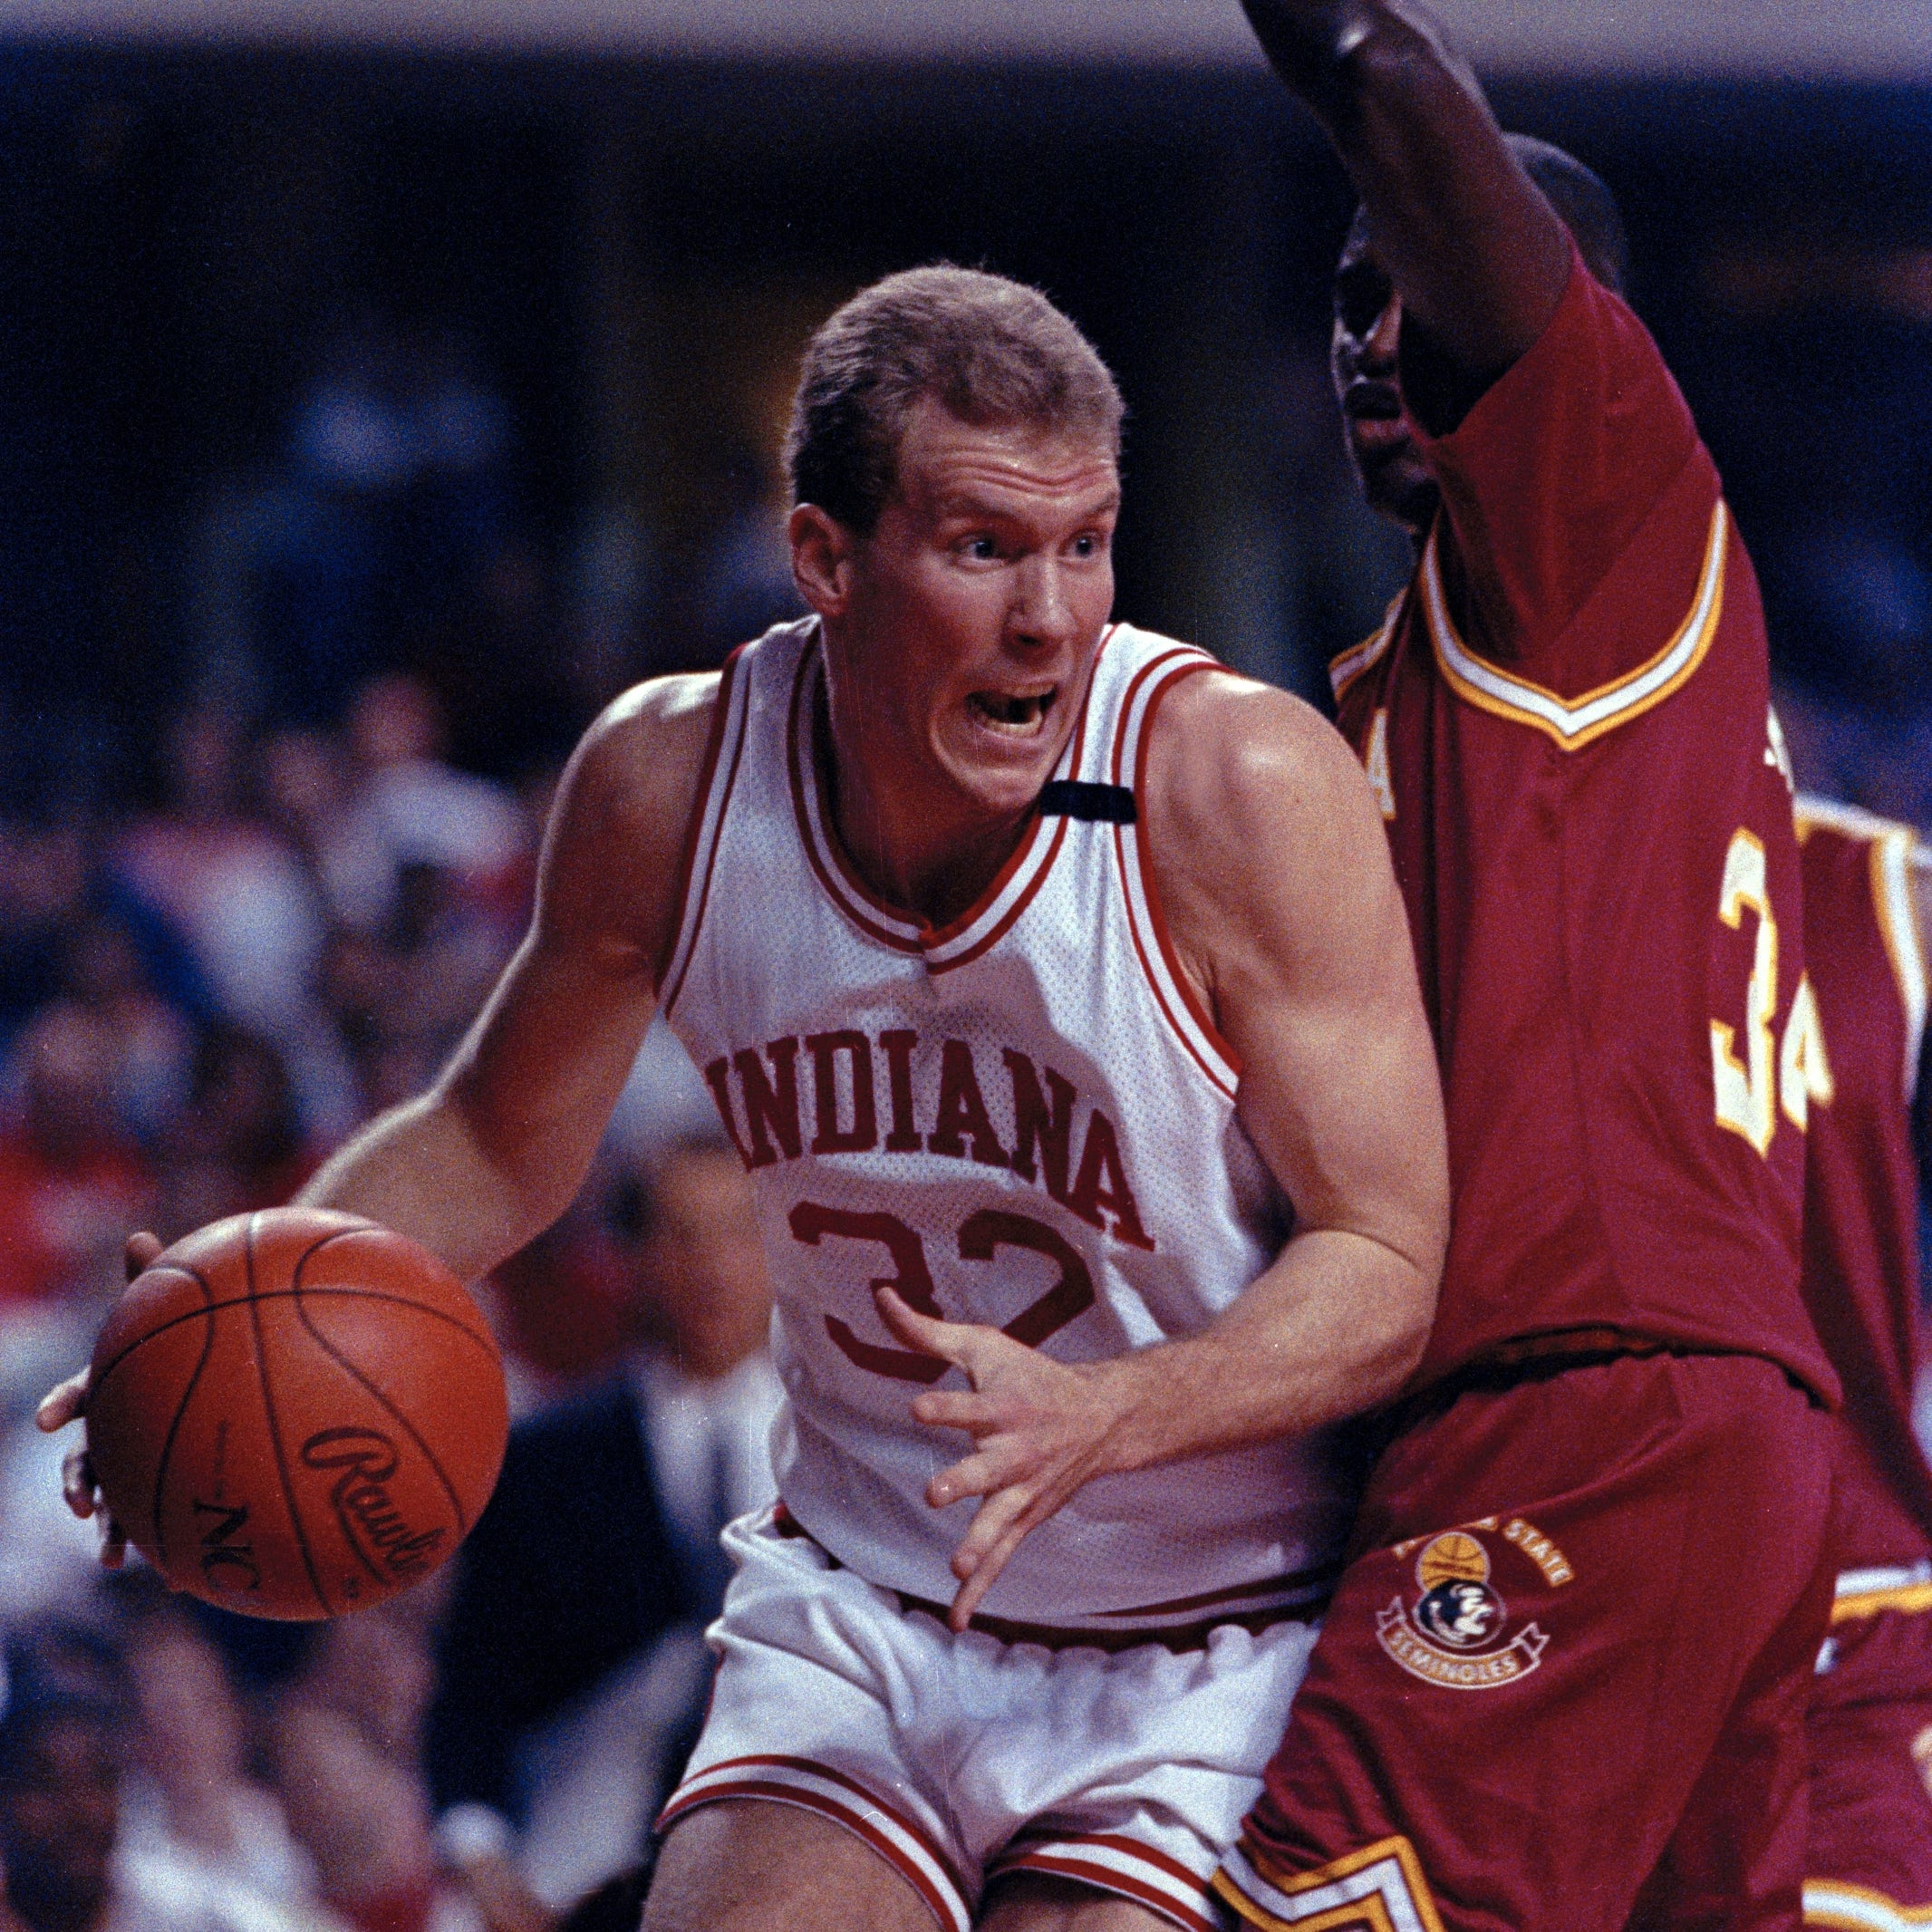 IU basketball's Eric Anderson remembered as great, fun-loving teammate, complete player